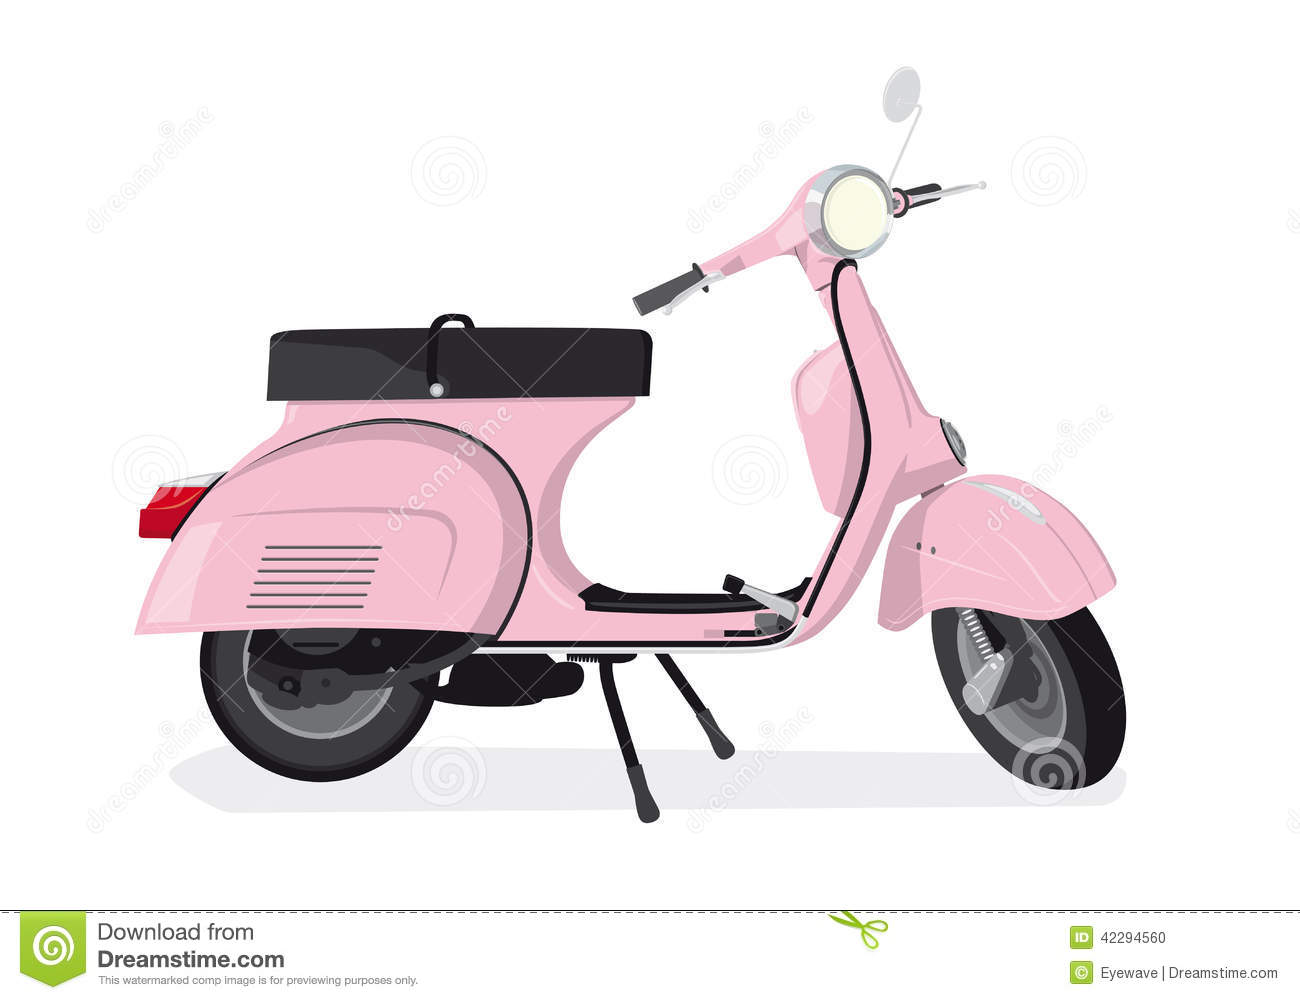 Scooter clipart pink scooter. Portal